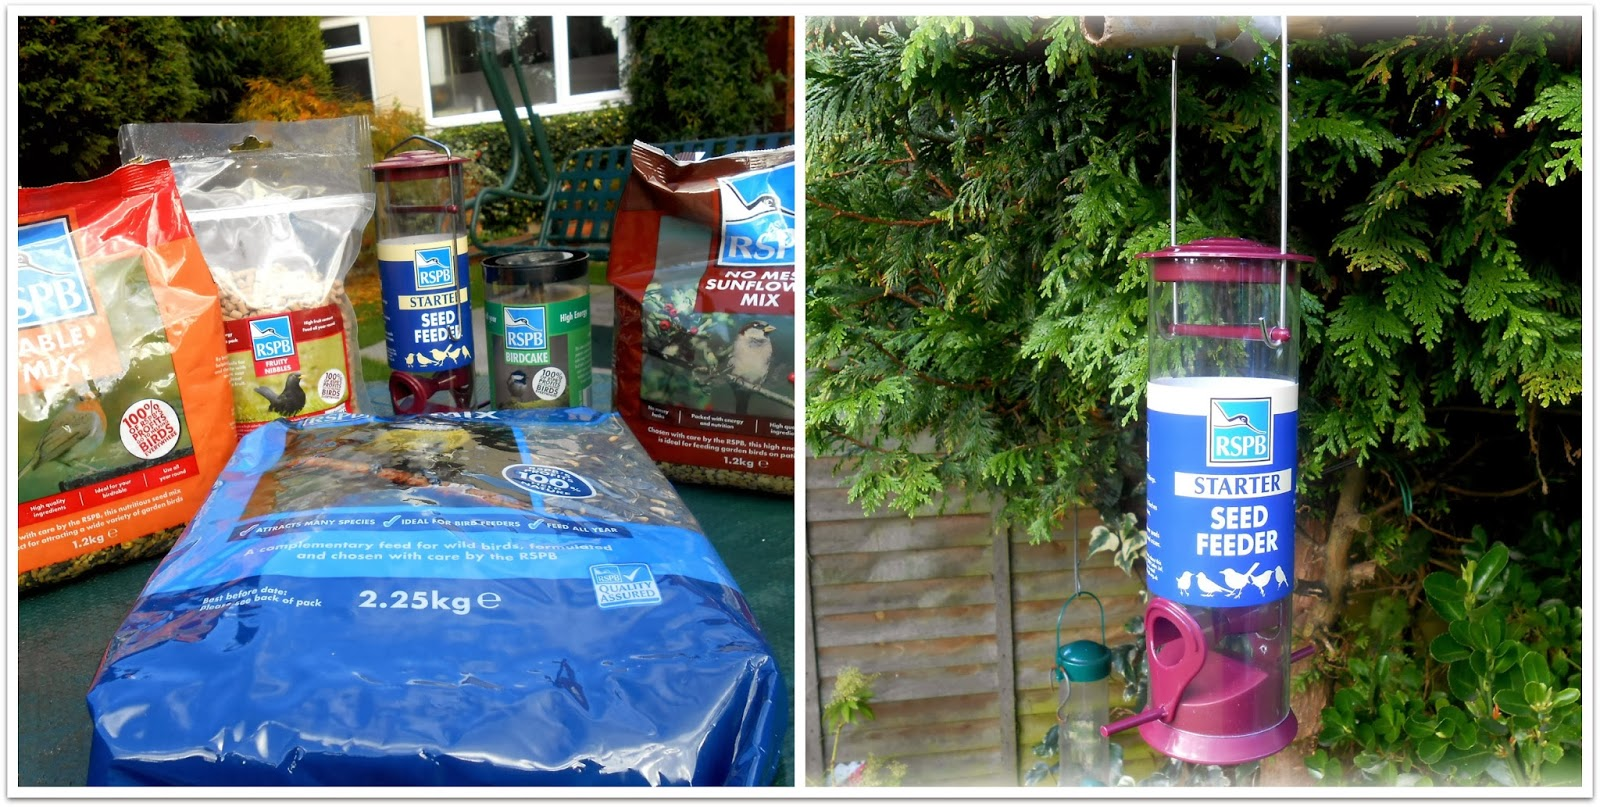 RSPB Started Feeder and Food